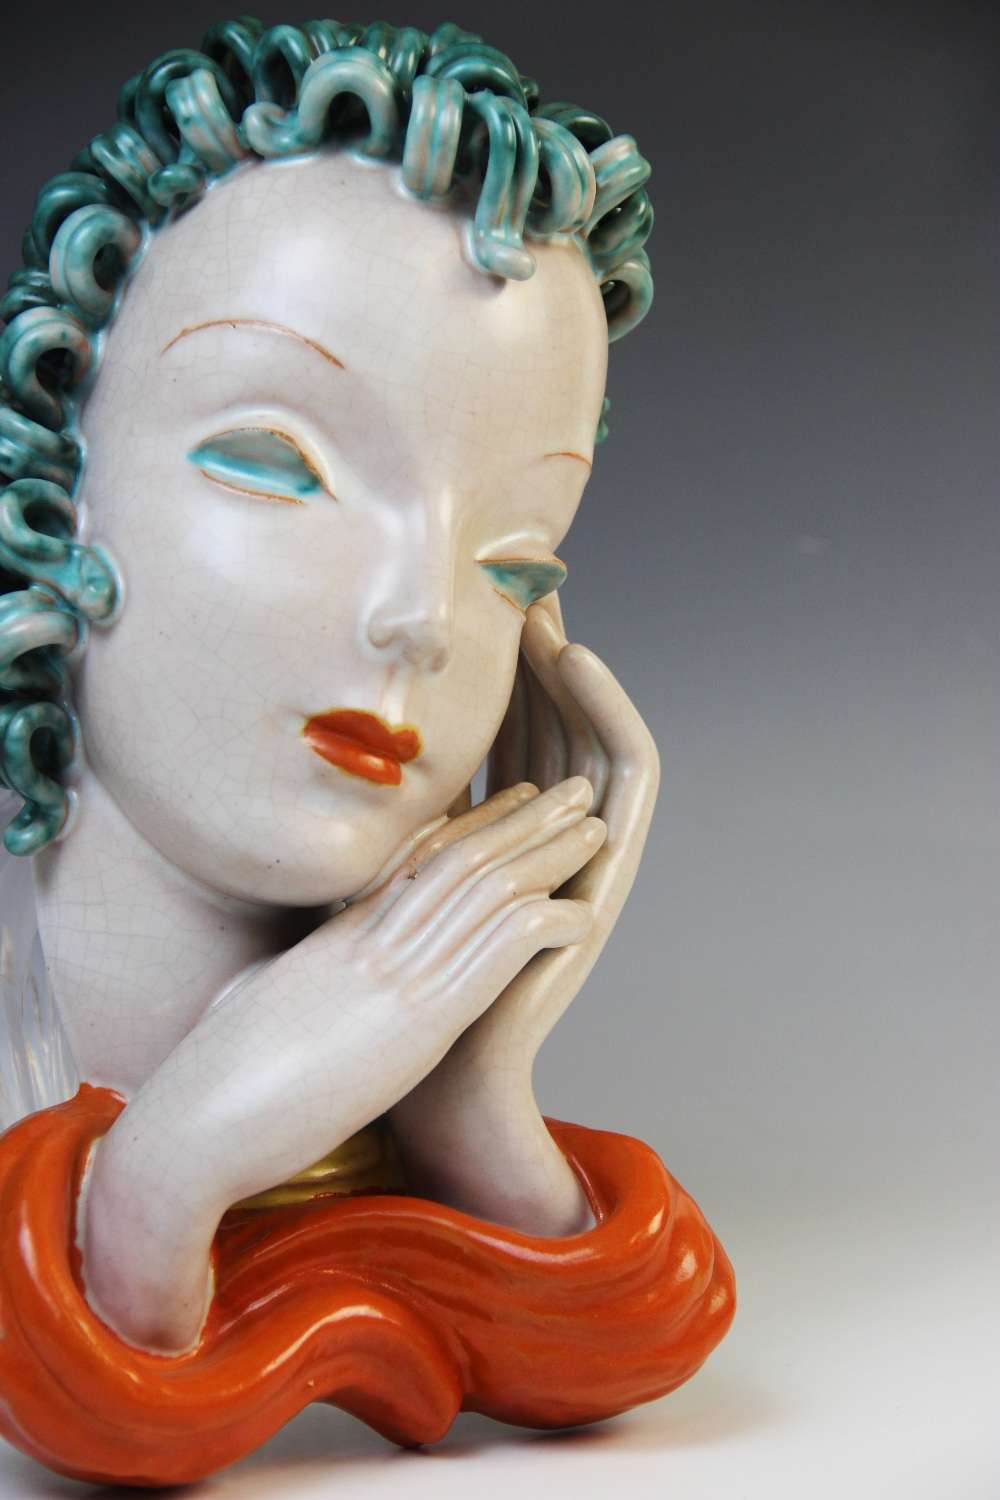 An Art Deco Goldscheider wall mask, early 20th century, modelled as a lady with blue curled hair and - Image 3 of 9